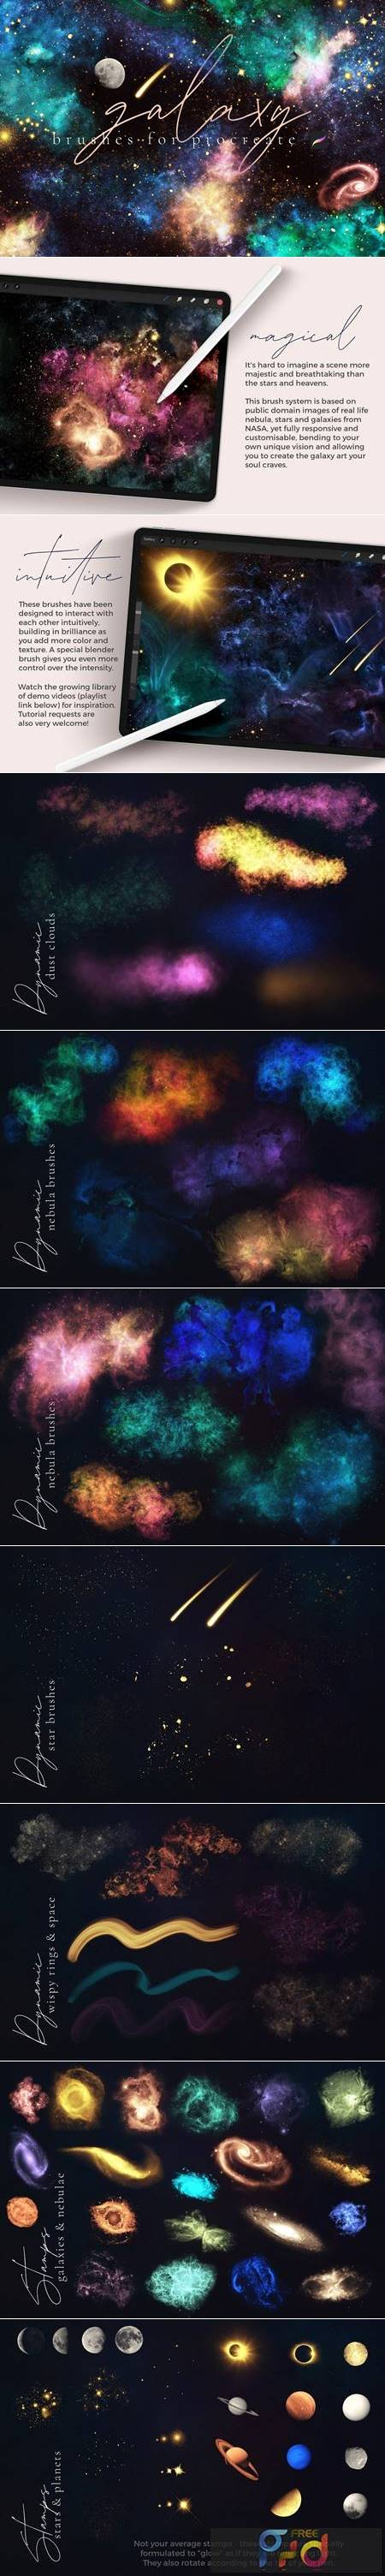 Galaxy Brushes for Procreate 5992272 1